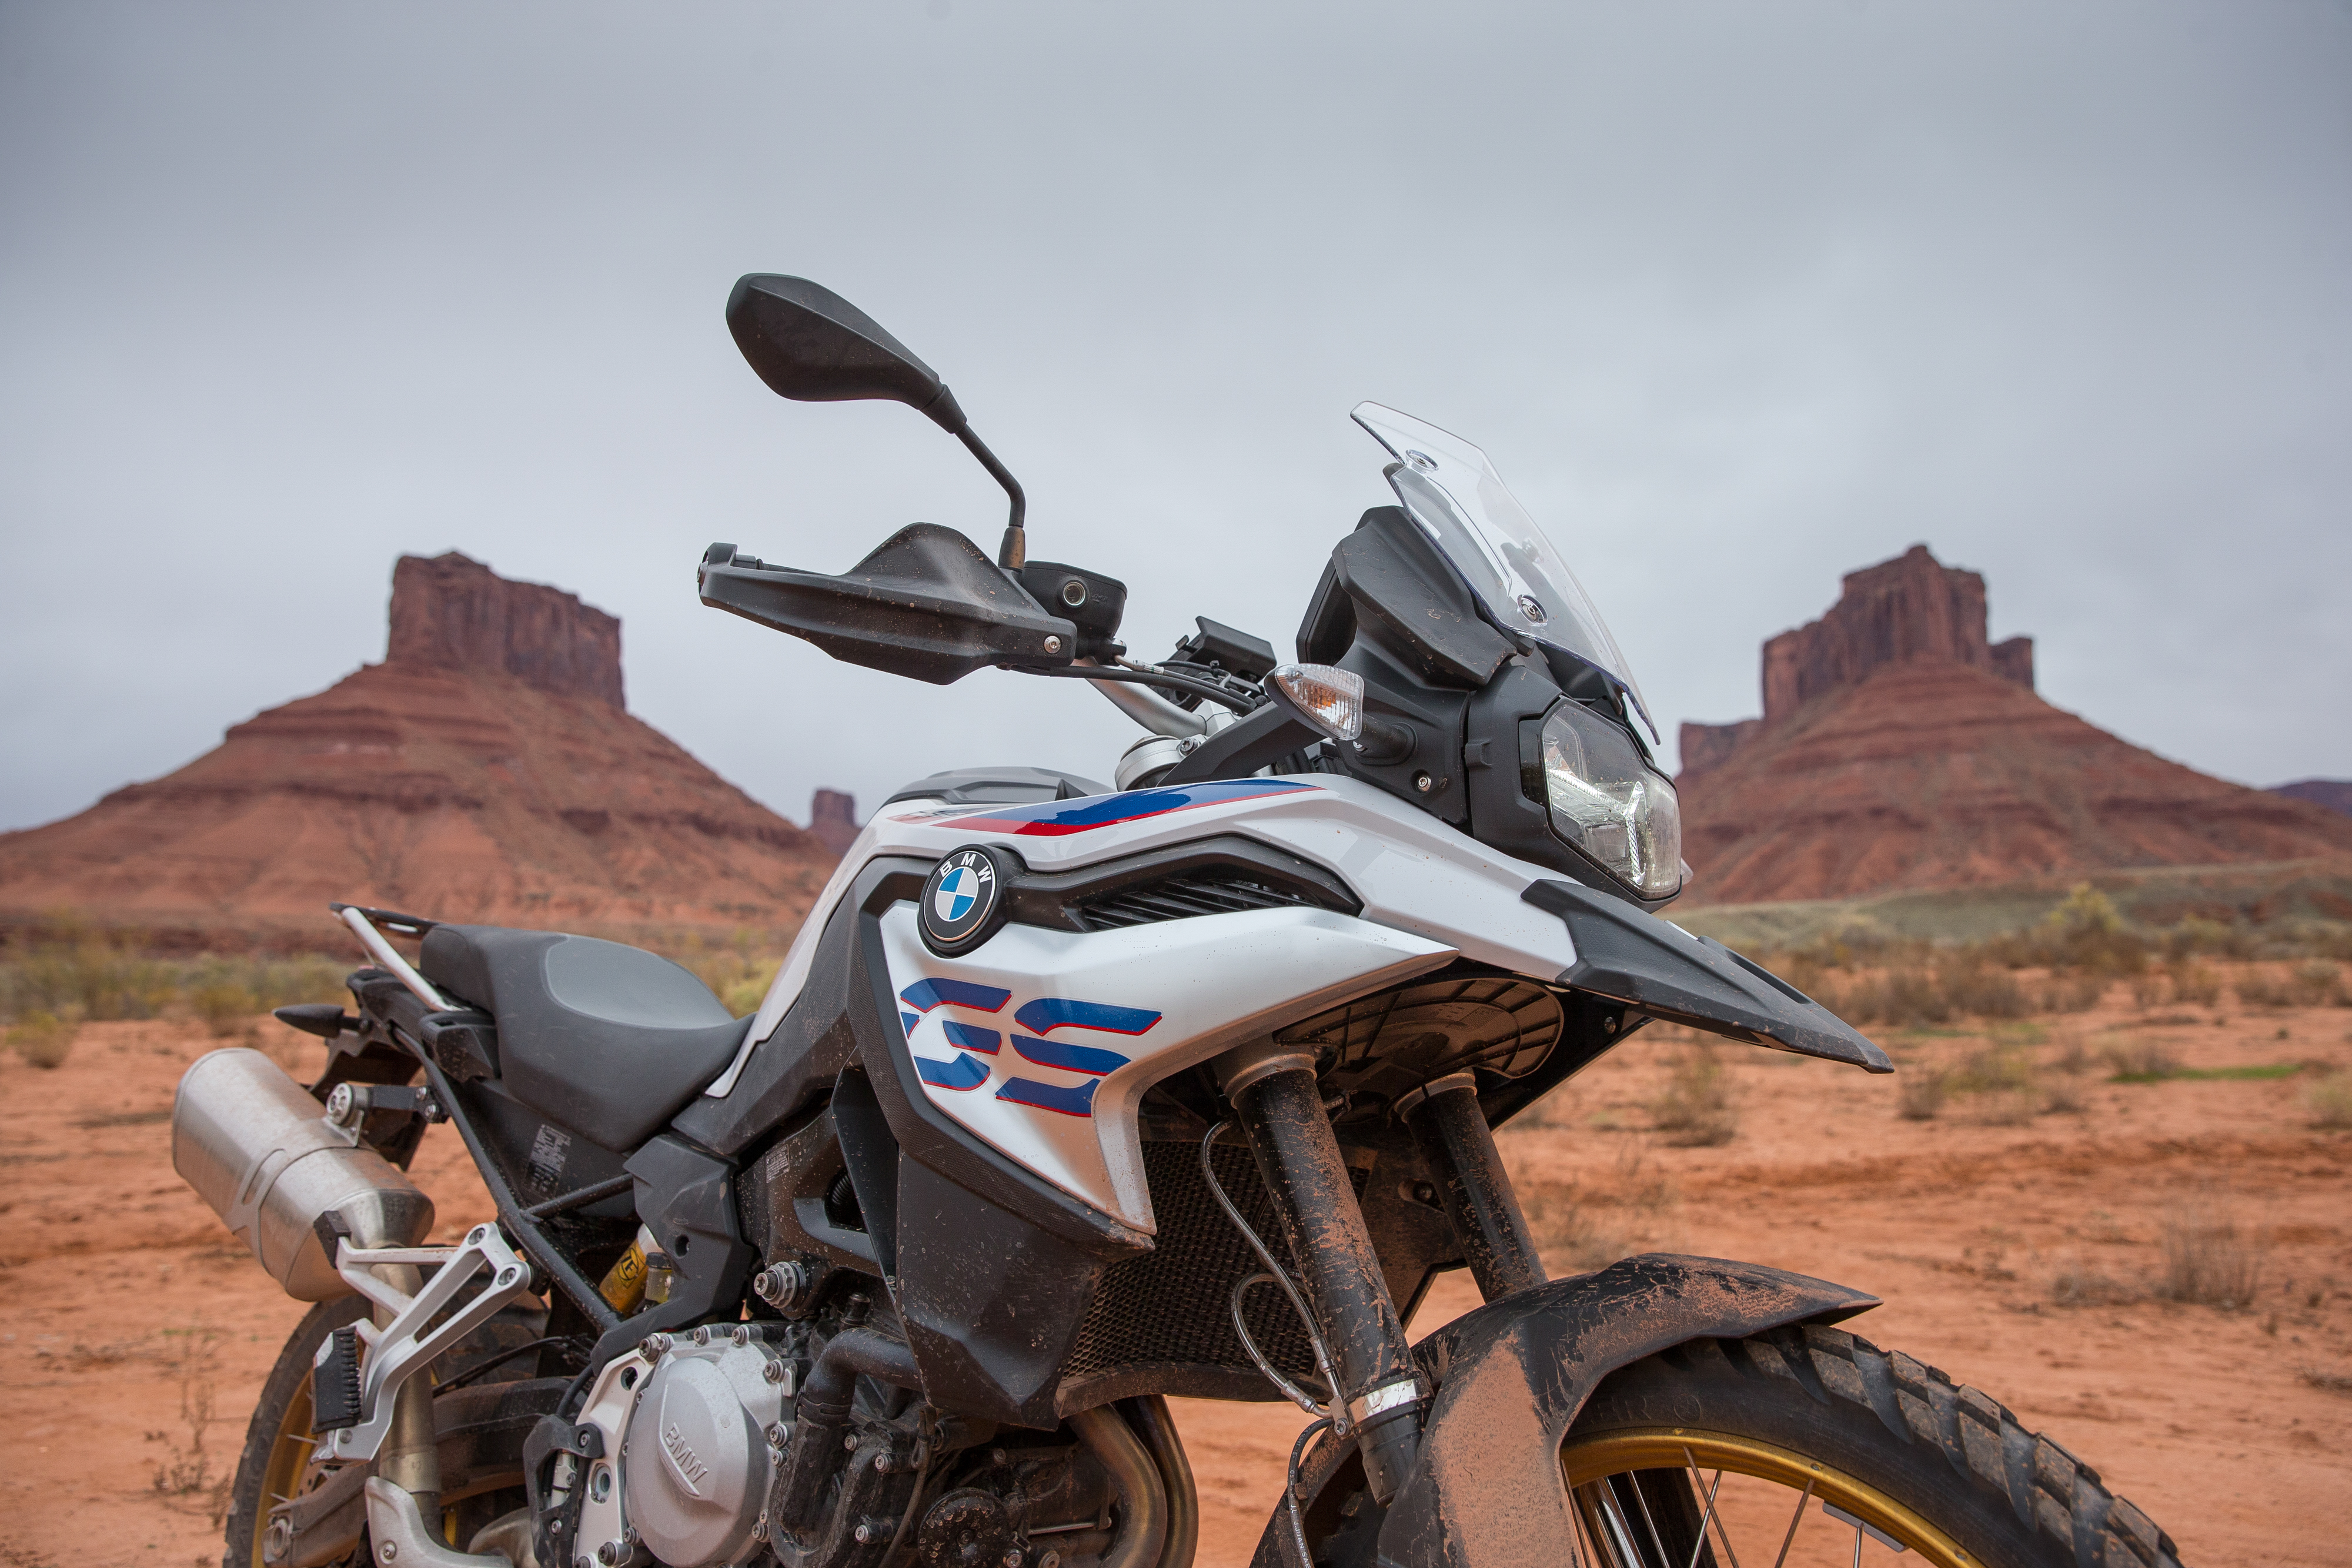 2019 Bmw F 850 Gs First Ride Review Revzilla